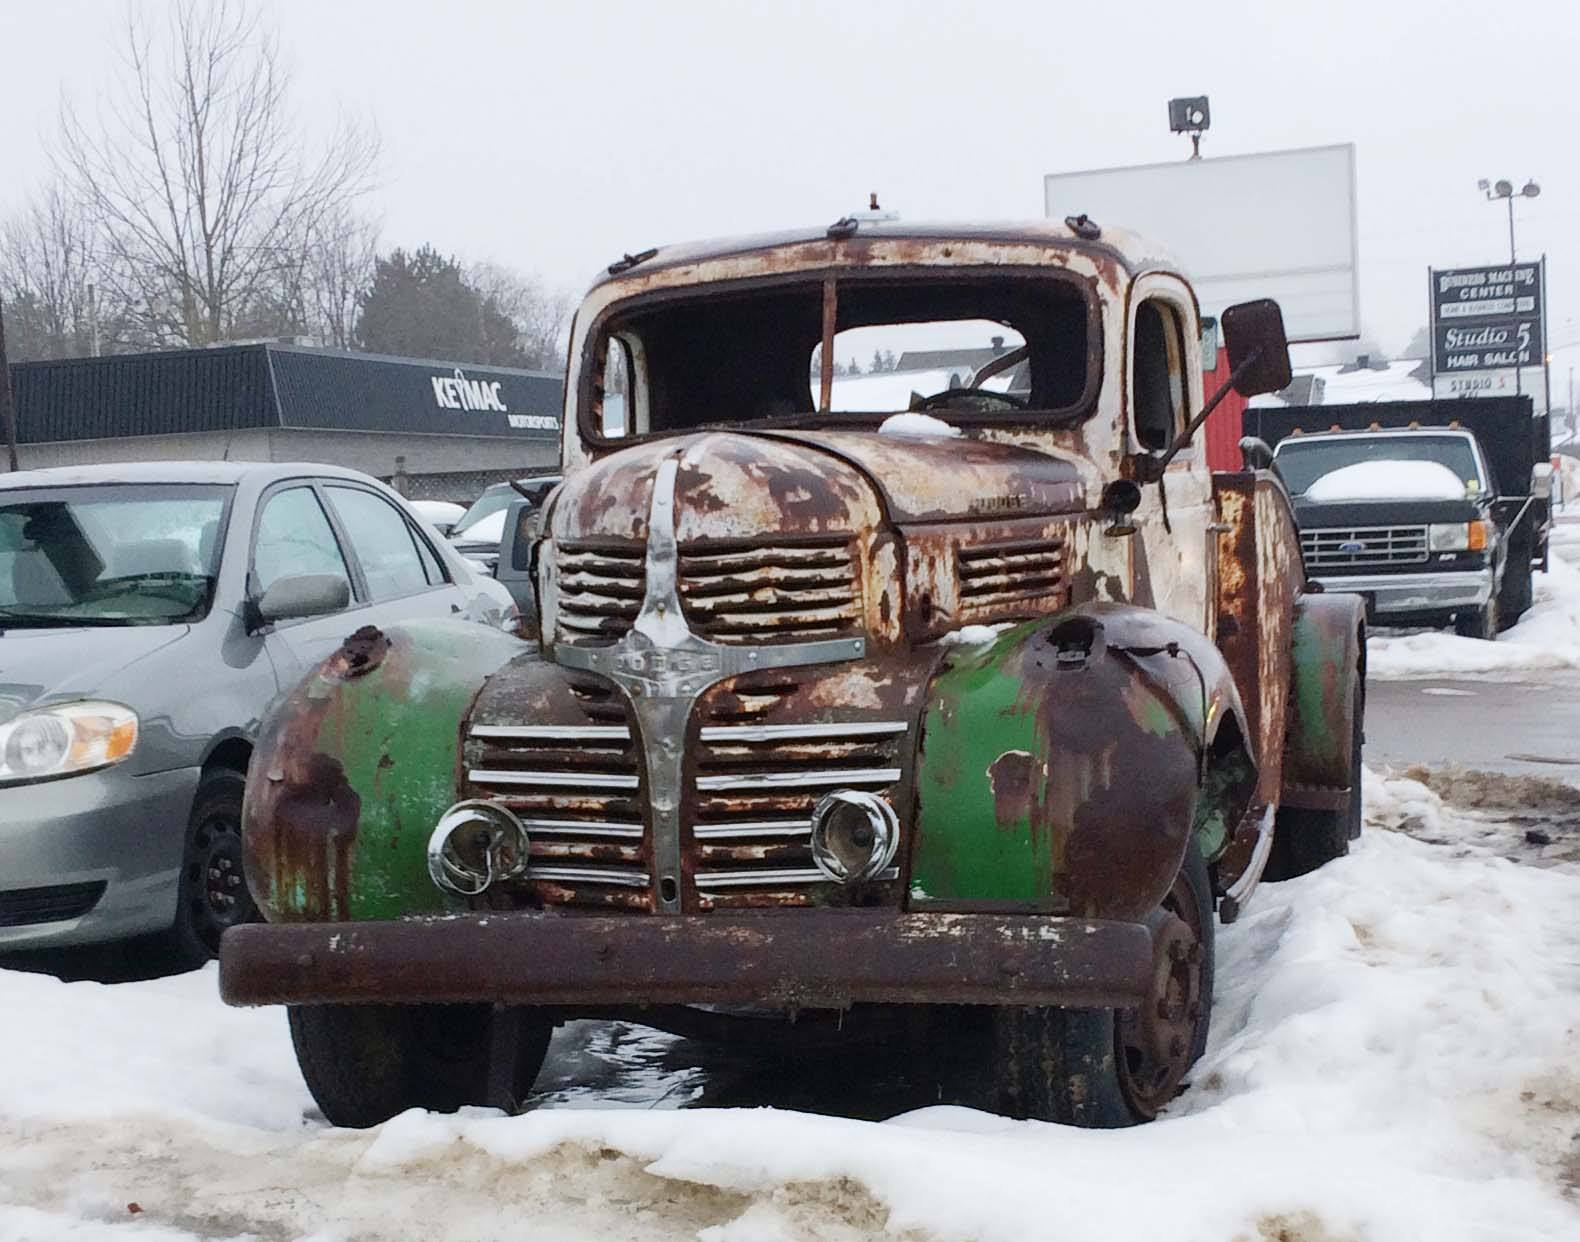 Dennis-Corrigan-Old-Dodge-tow-truck--To-tow-or-to-be-towed-1[1]